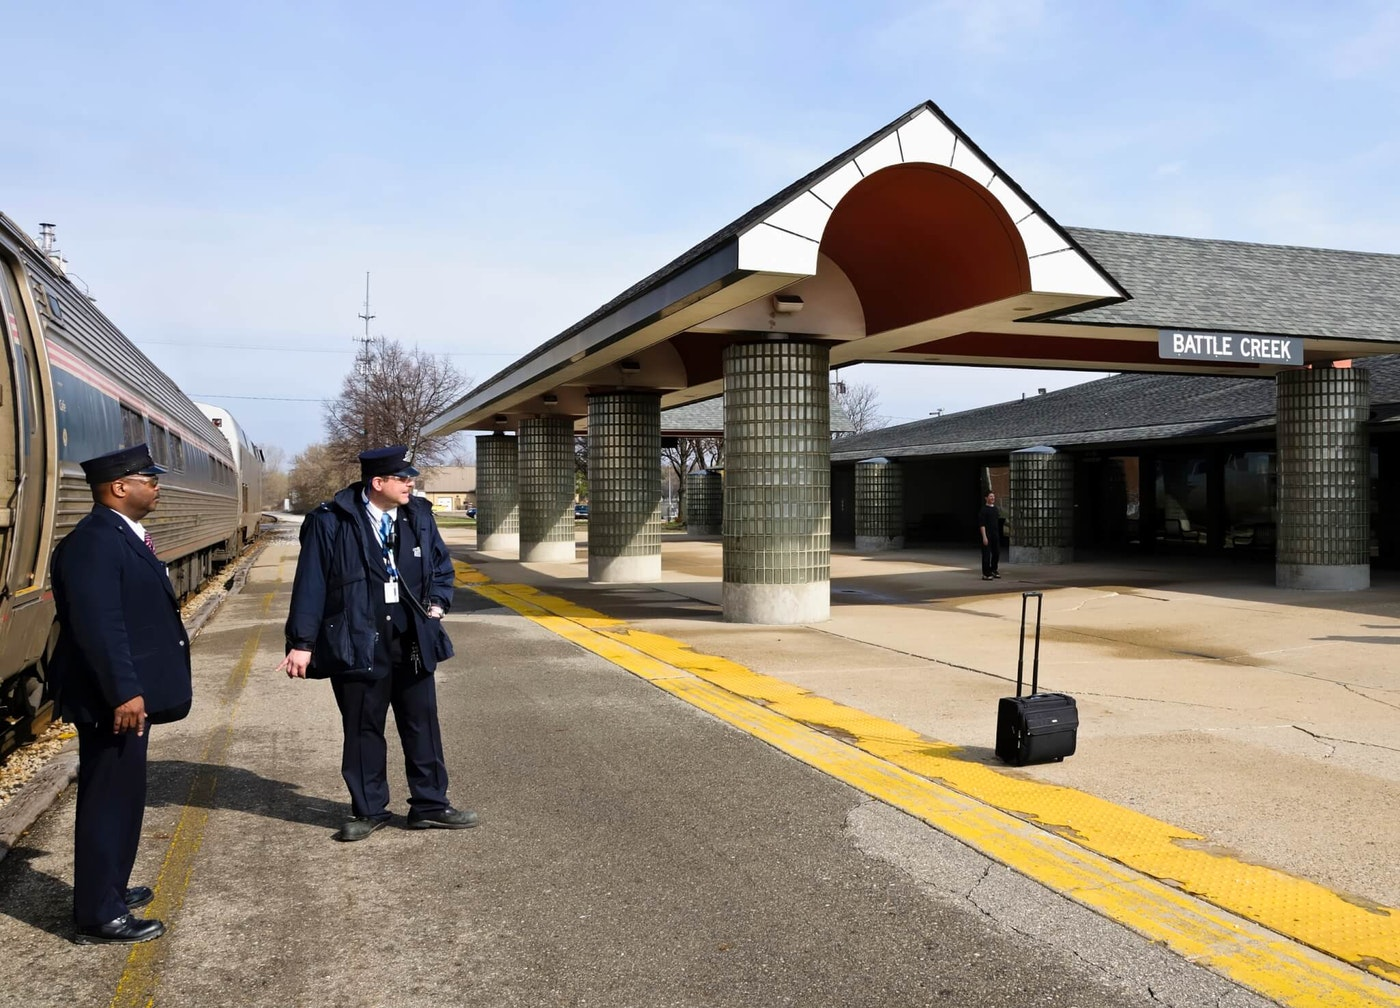 Train conductors standing at the train station in Battle Creek, Michiigan.